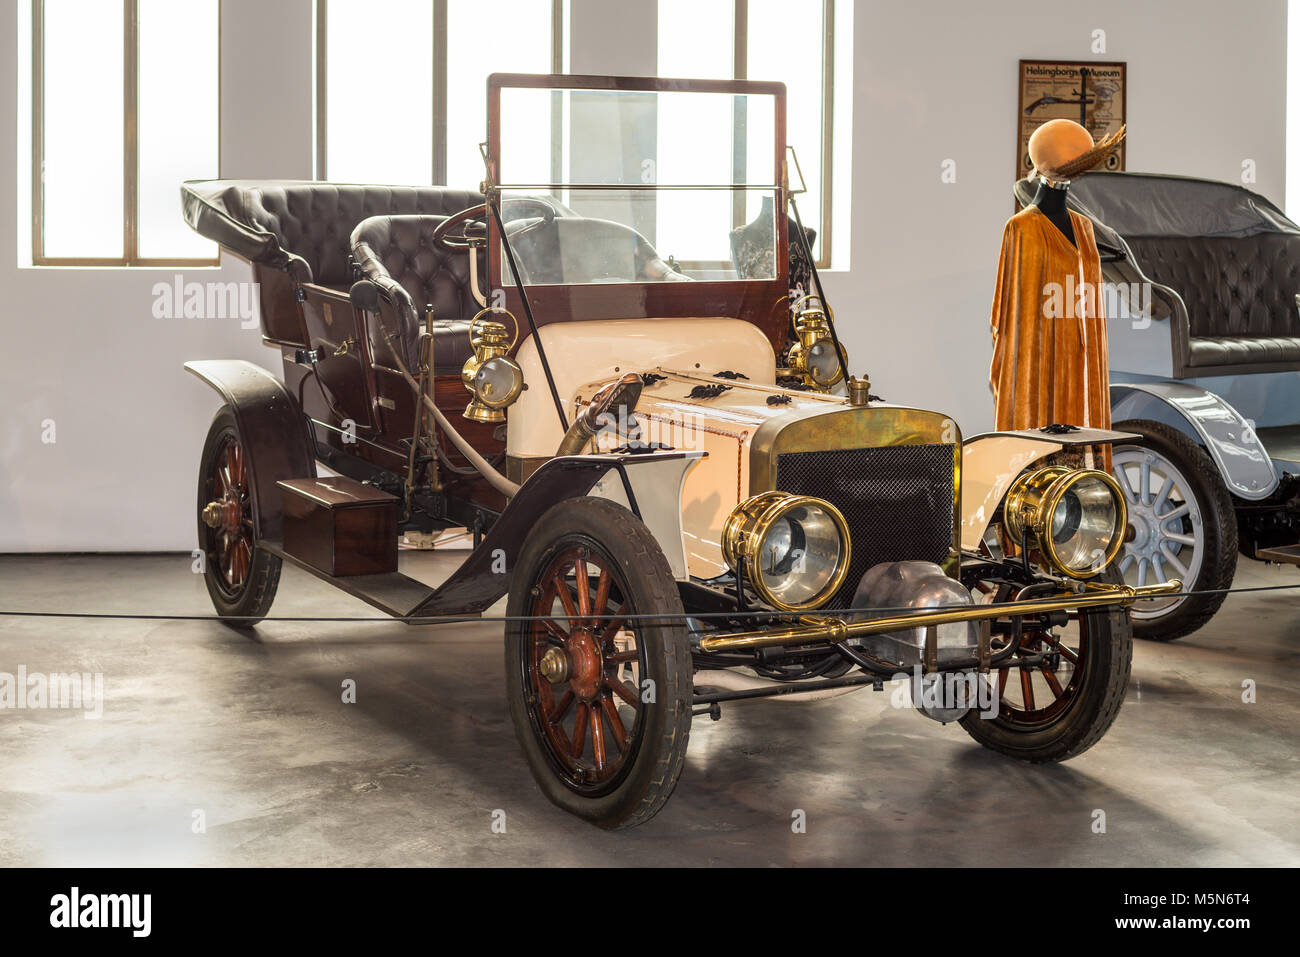 Malaga, Spain - December 7, 2016: Vintage Antique 1906 Jackson USA car displayed at Malaga Automobile Museum in - Stock Image